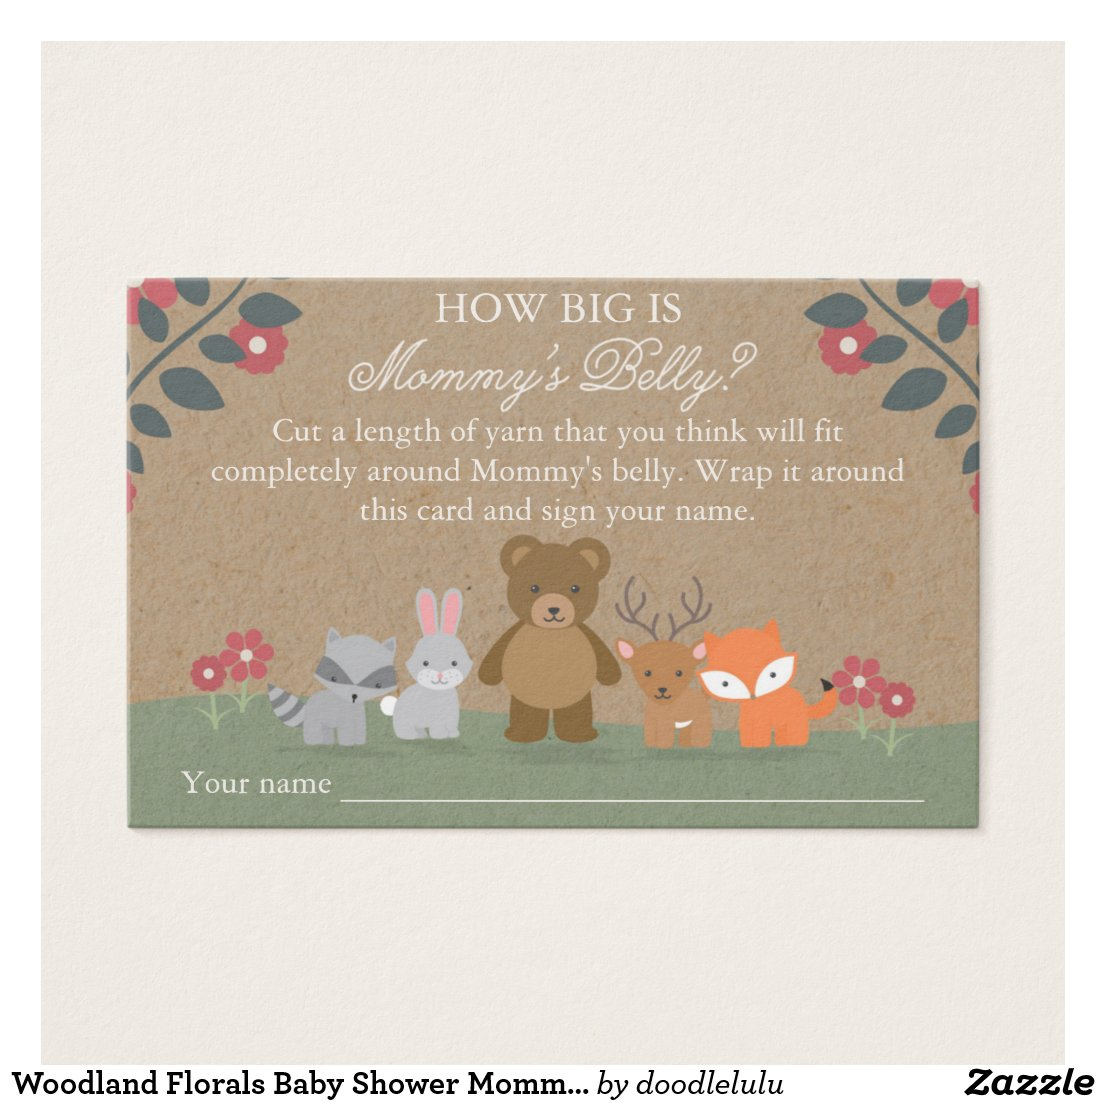 Woodland Florals Baby Shower Mommy's Belly Game